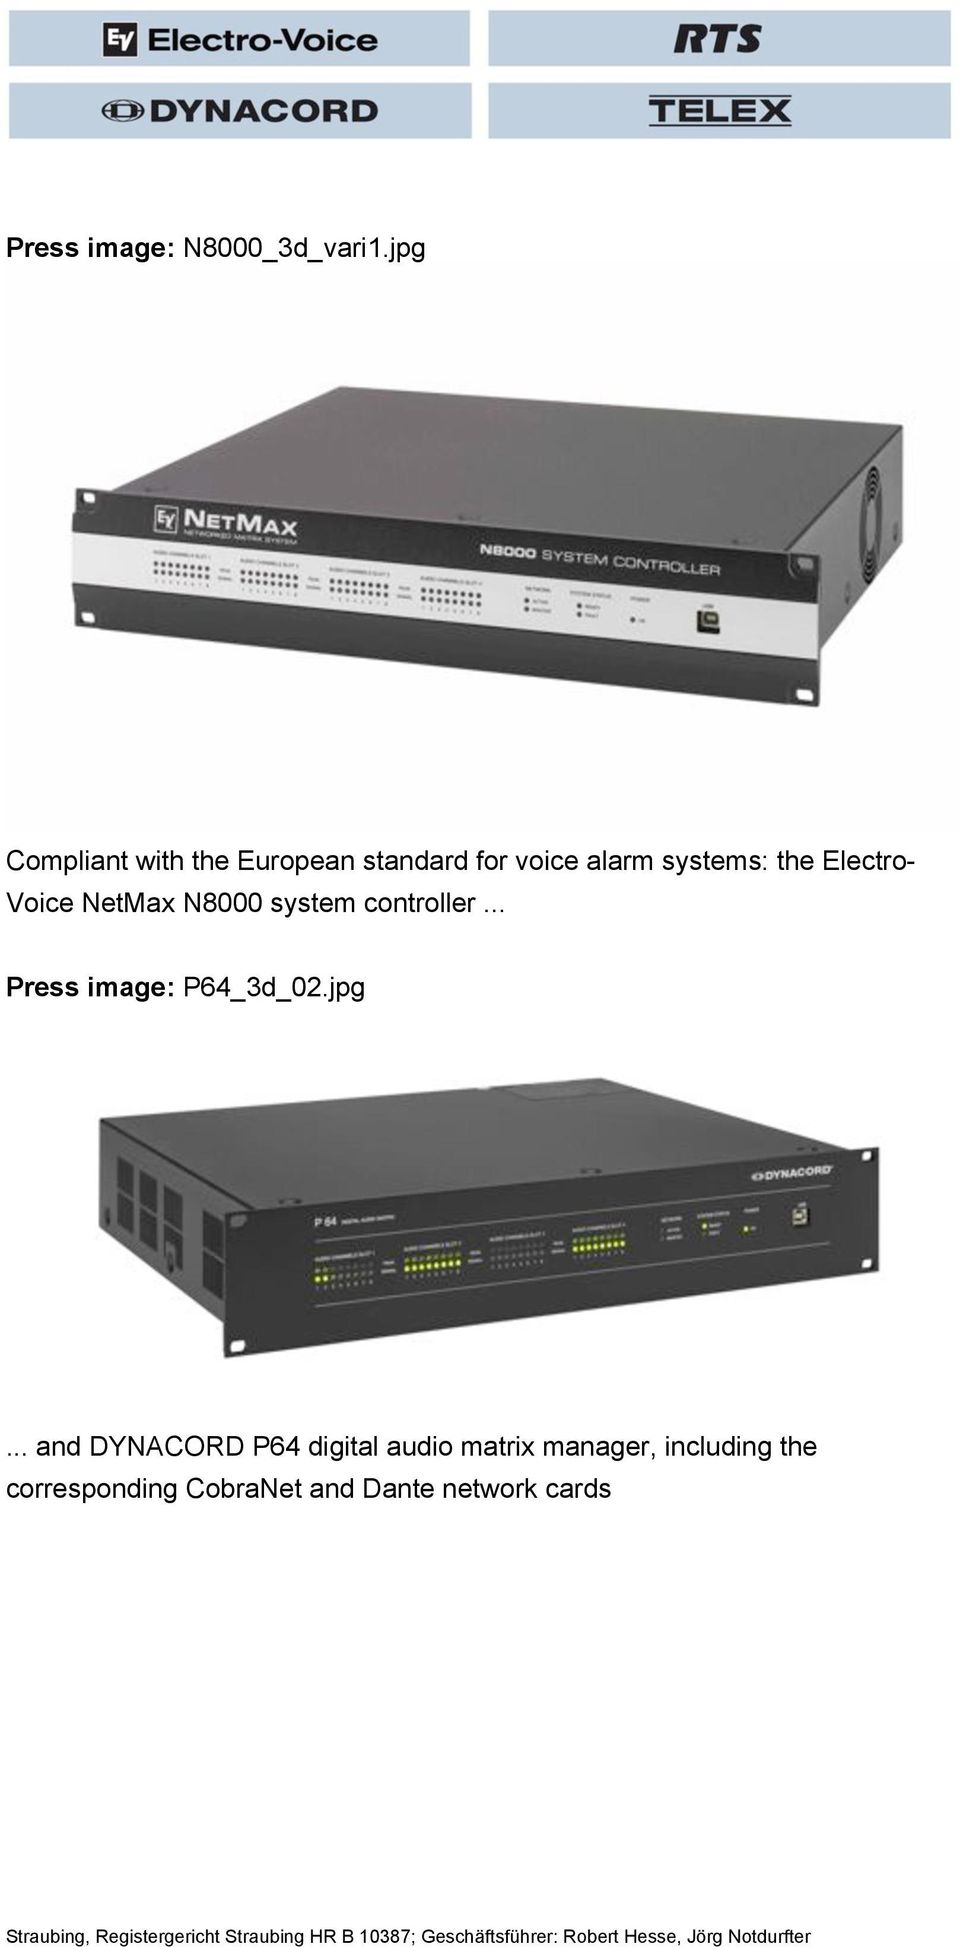 Electro- Voice NetMax N8000 system controller... Press image: P64_3d_02.